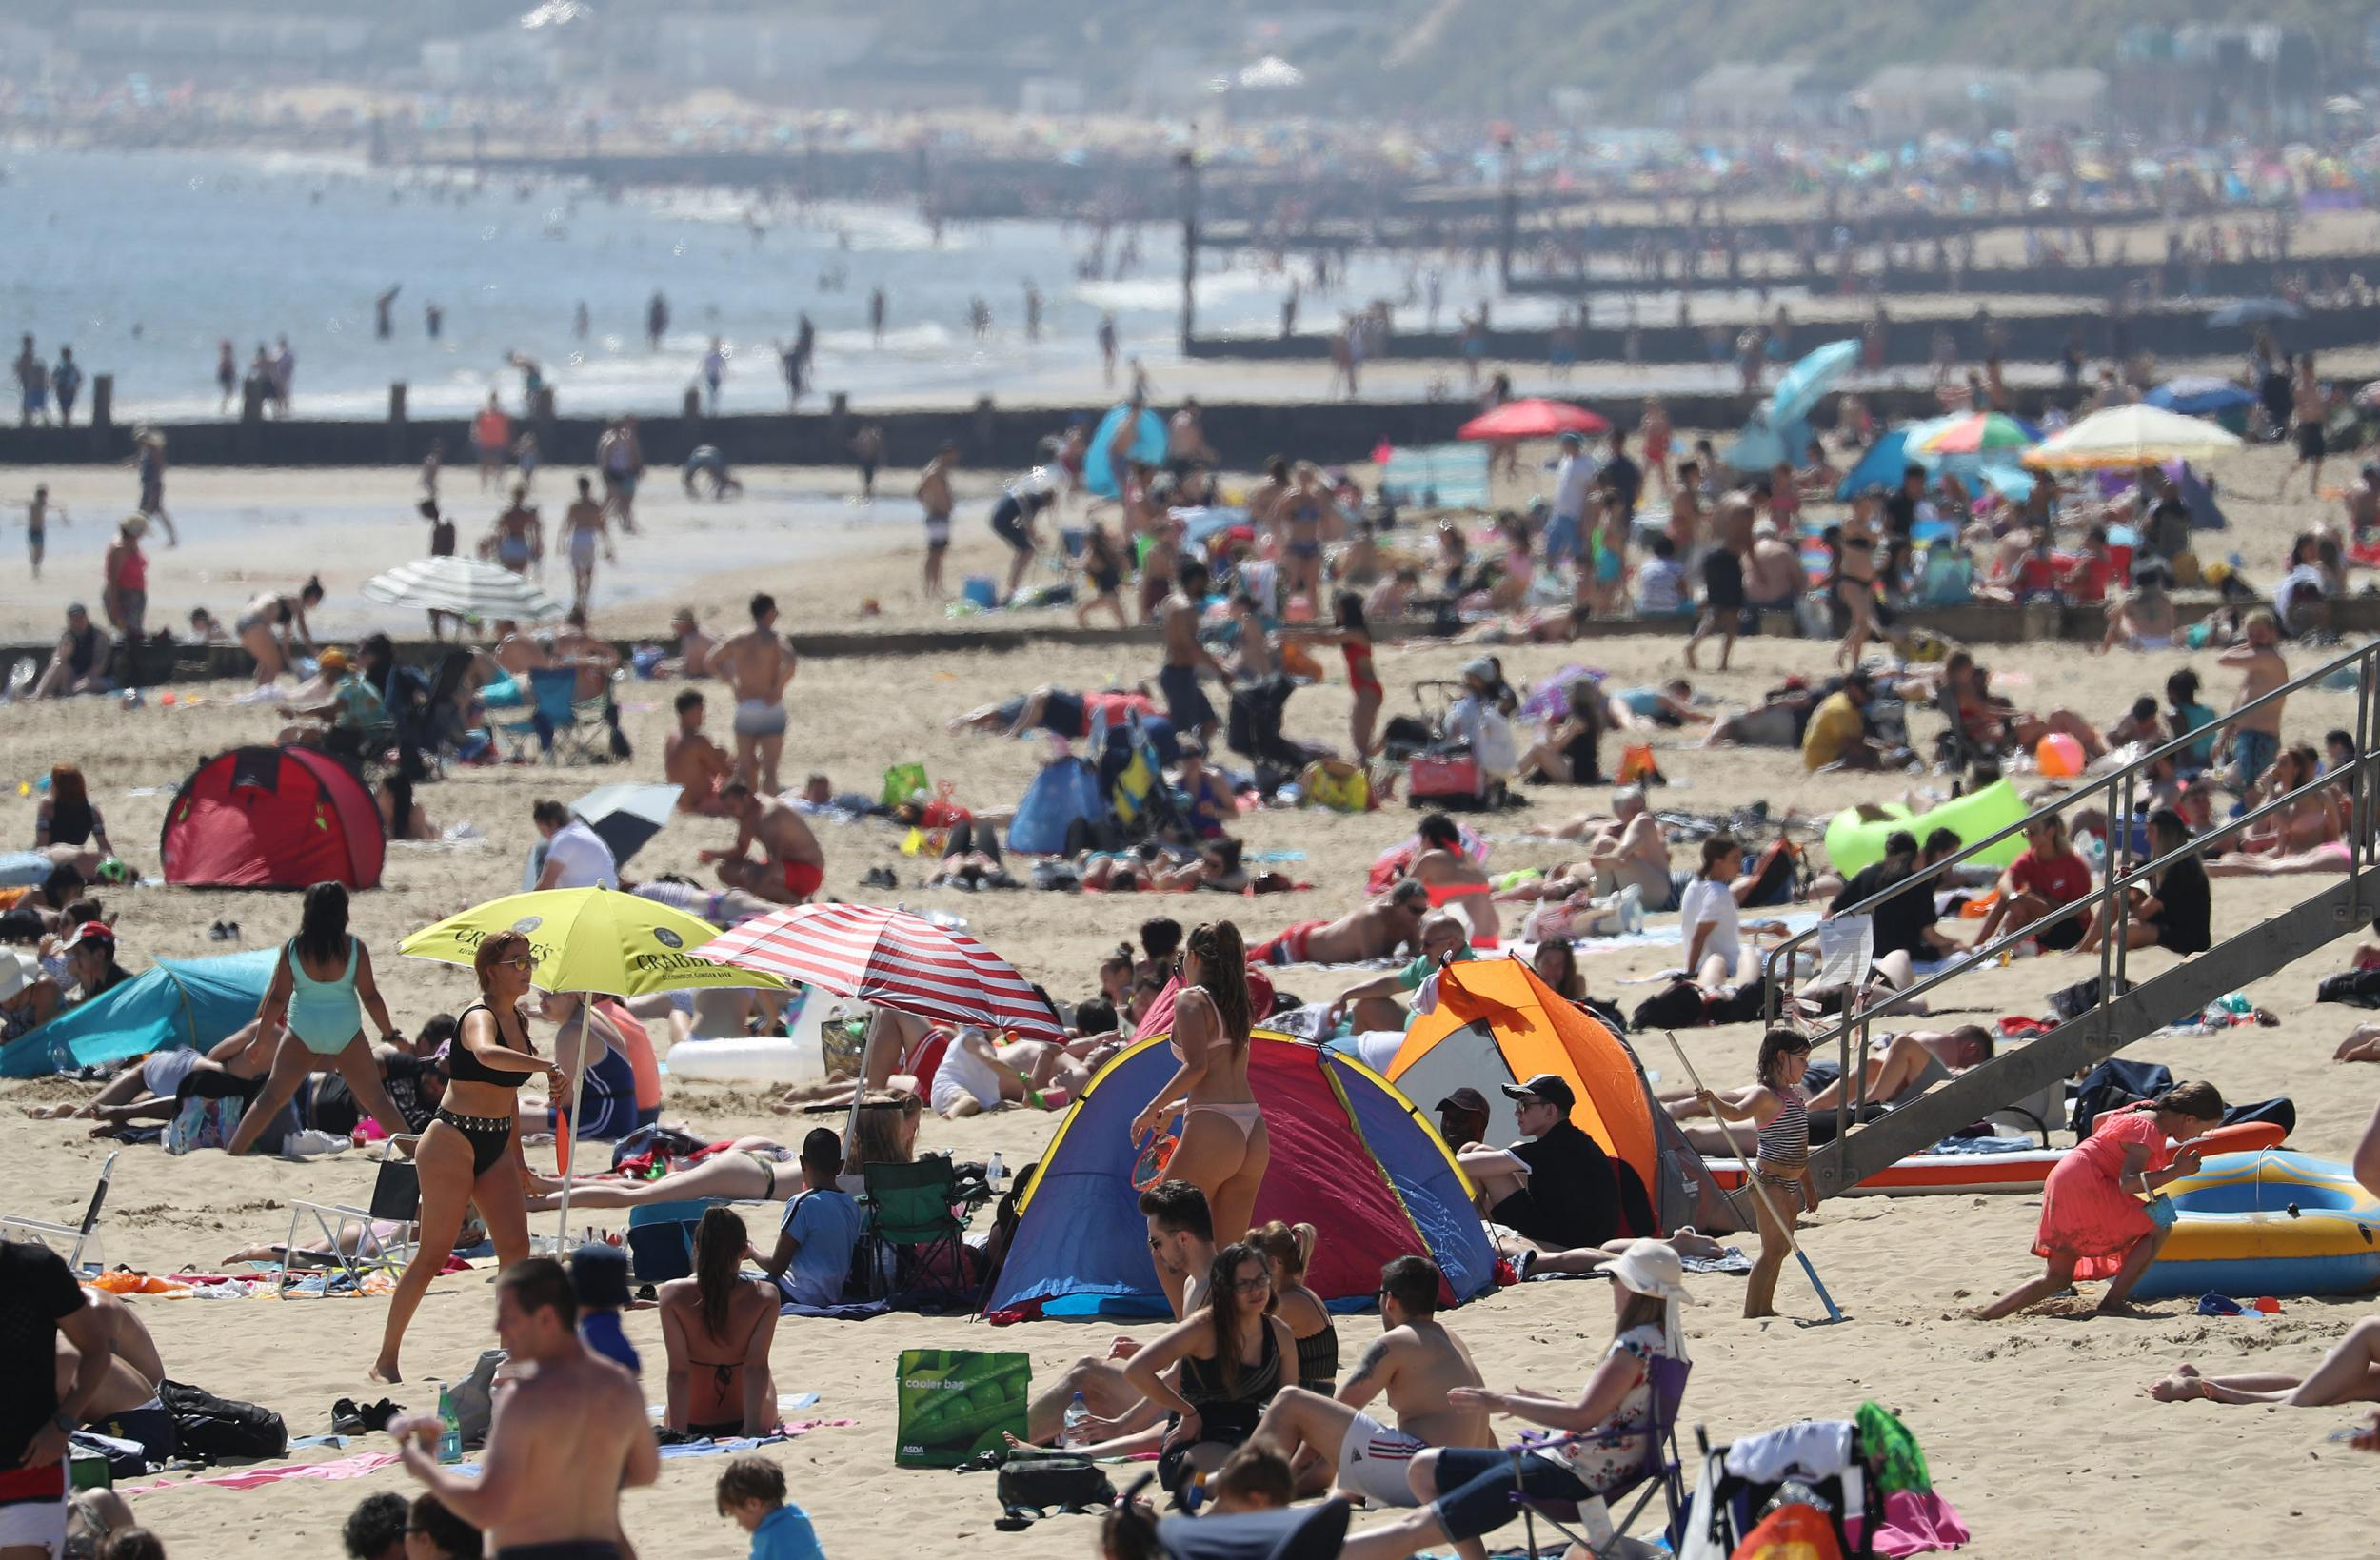 UK weather: Crowds hit beaches despite lockdown as Met Office confirms hottest day of the year